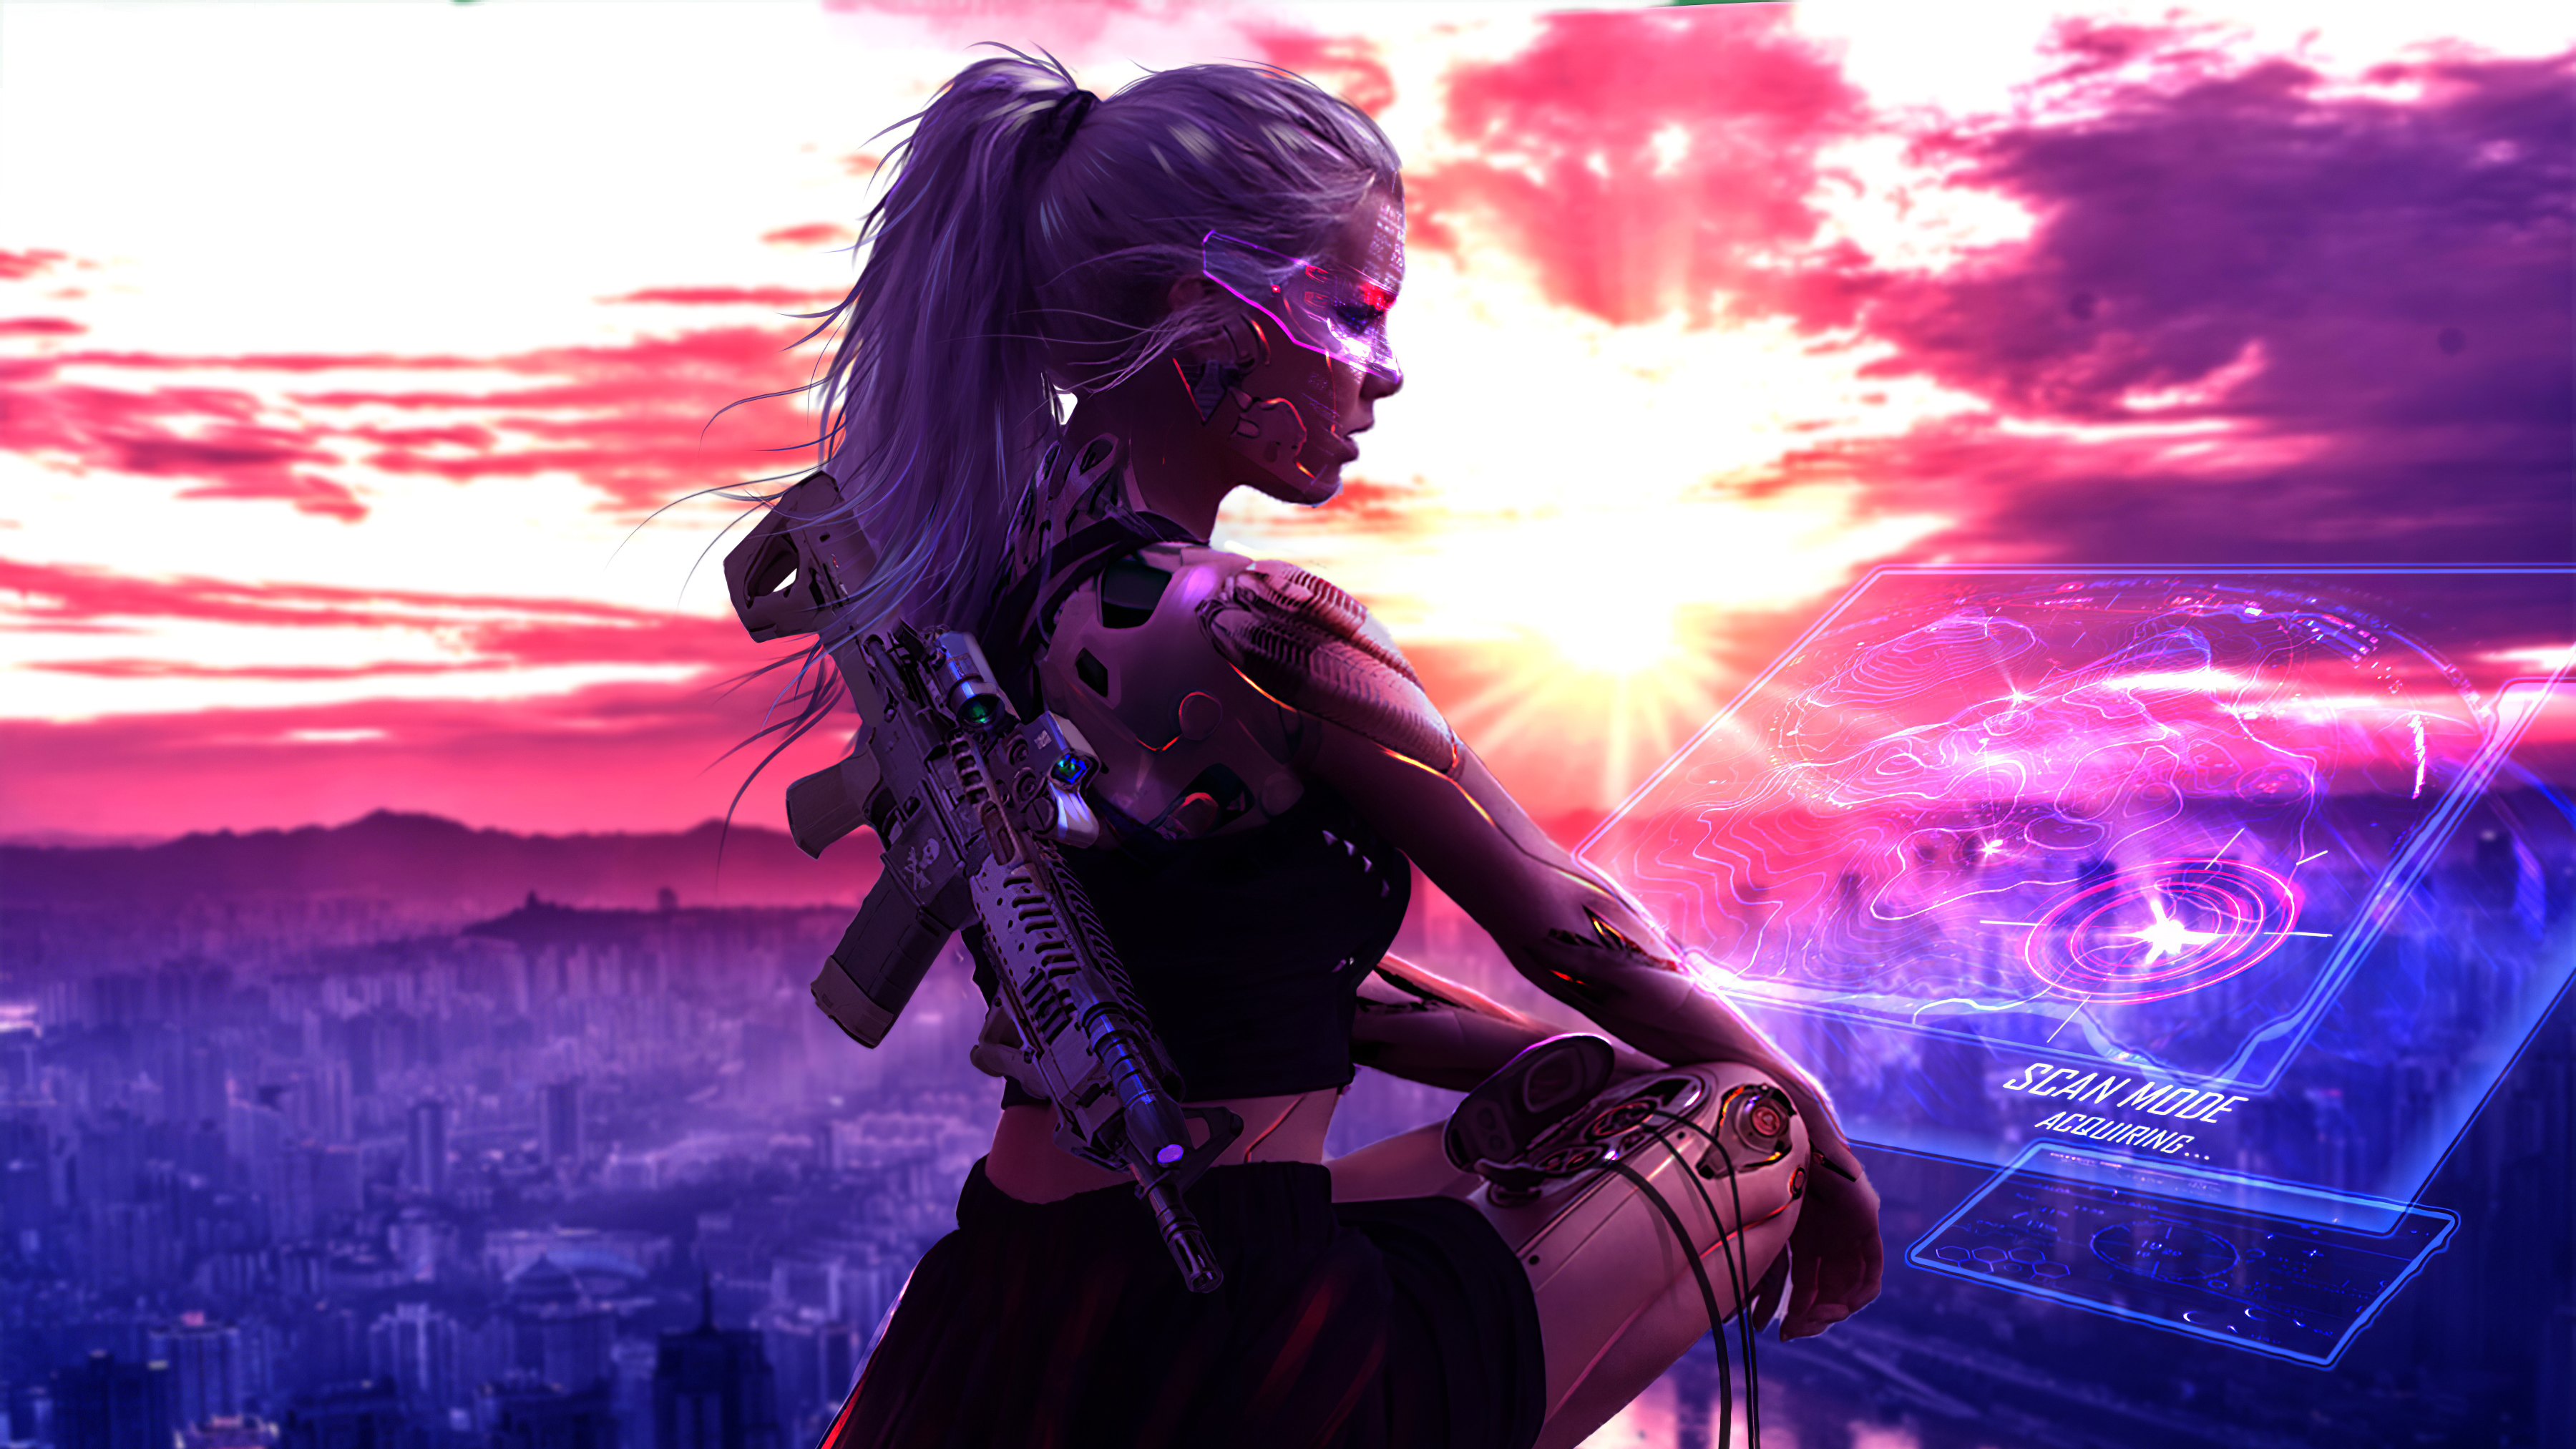 Cyberpunk Girl With Gun 4k Artwork Hd Artist 4k Wallpapers Images Backgrounds Photos And Pictures